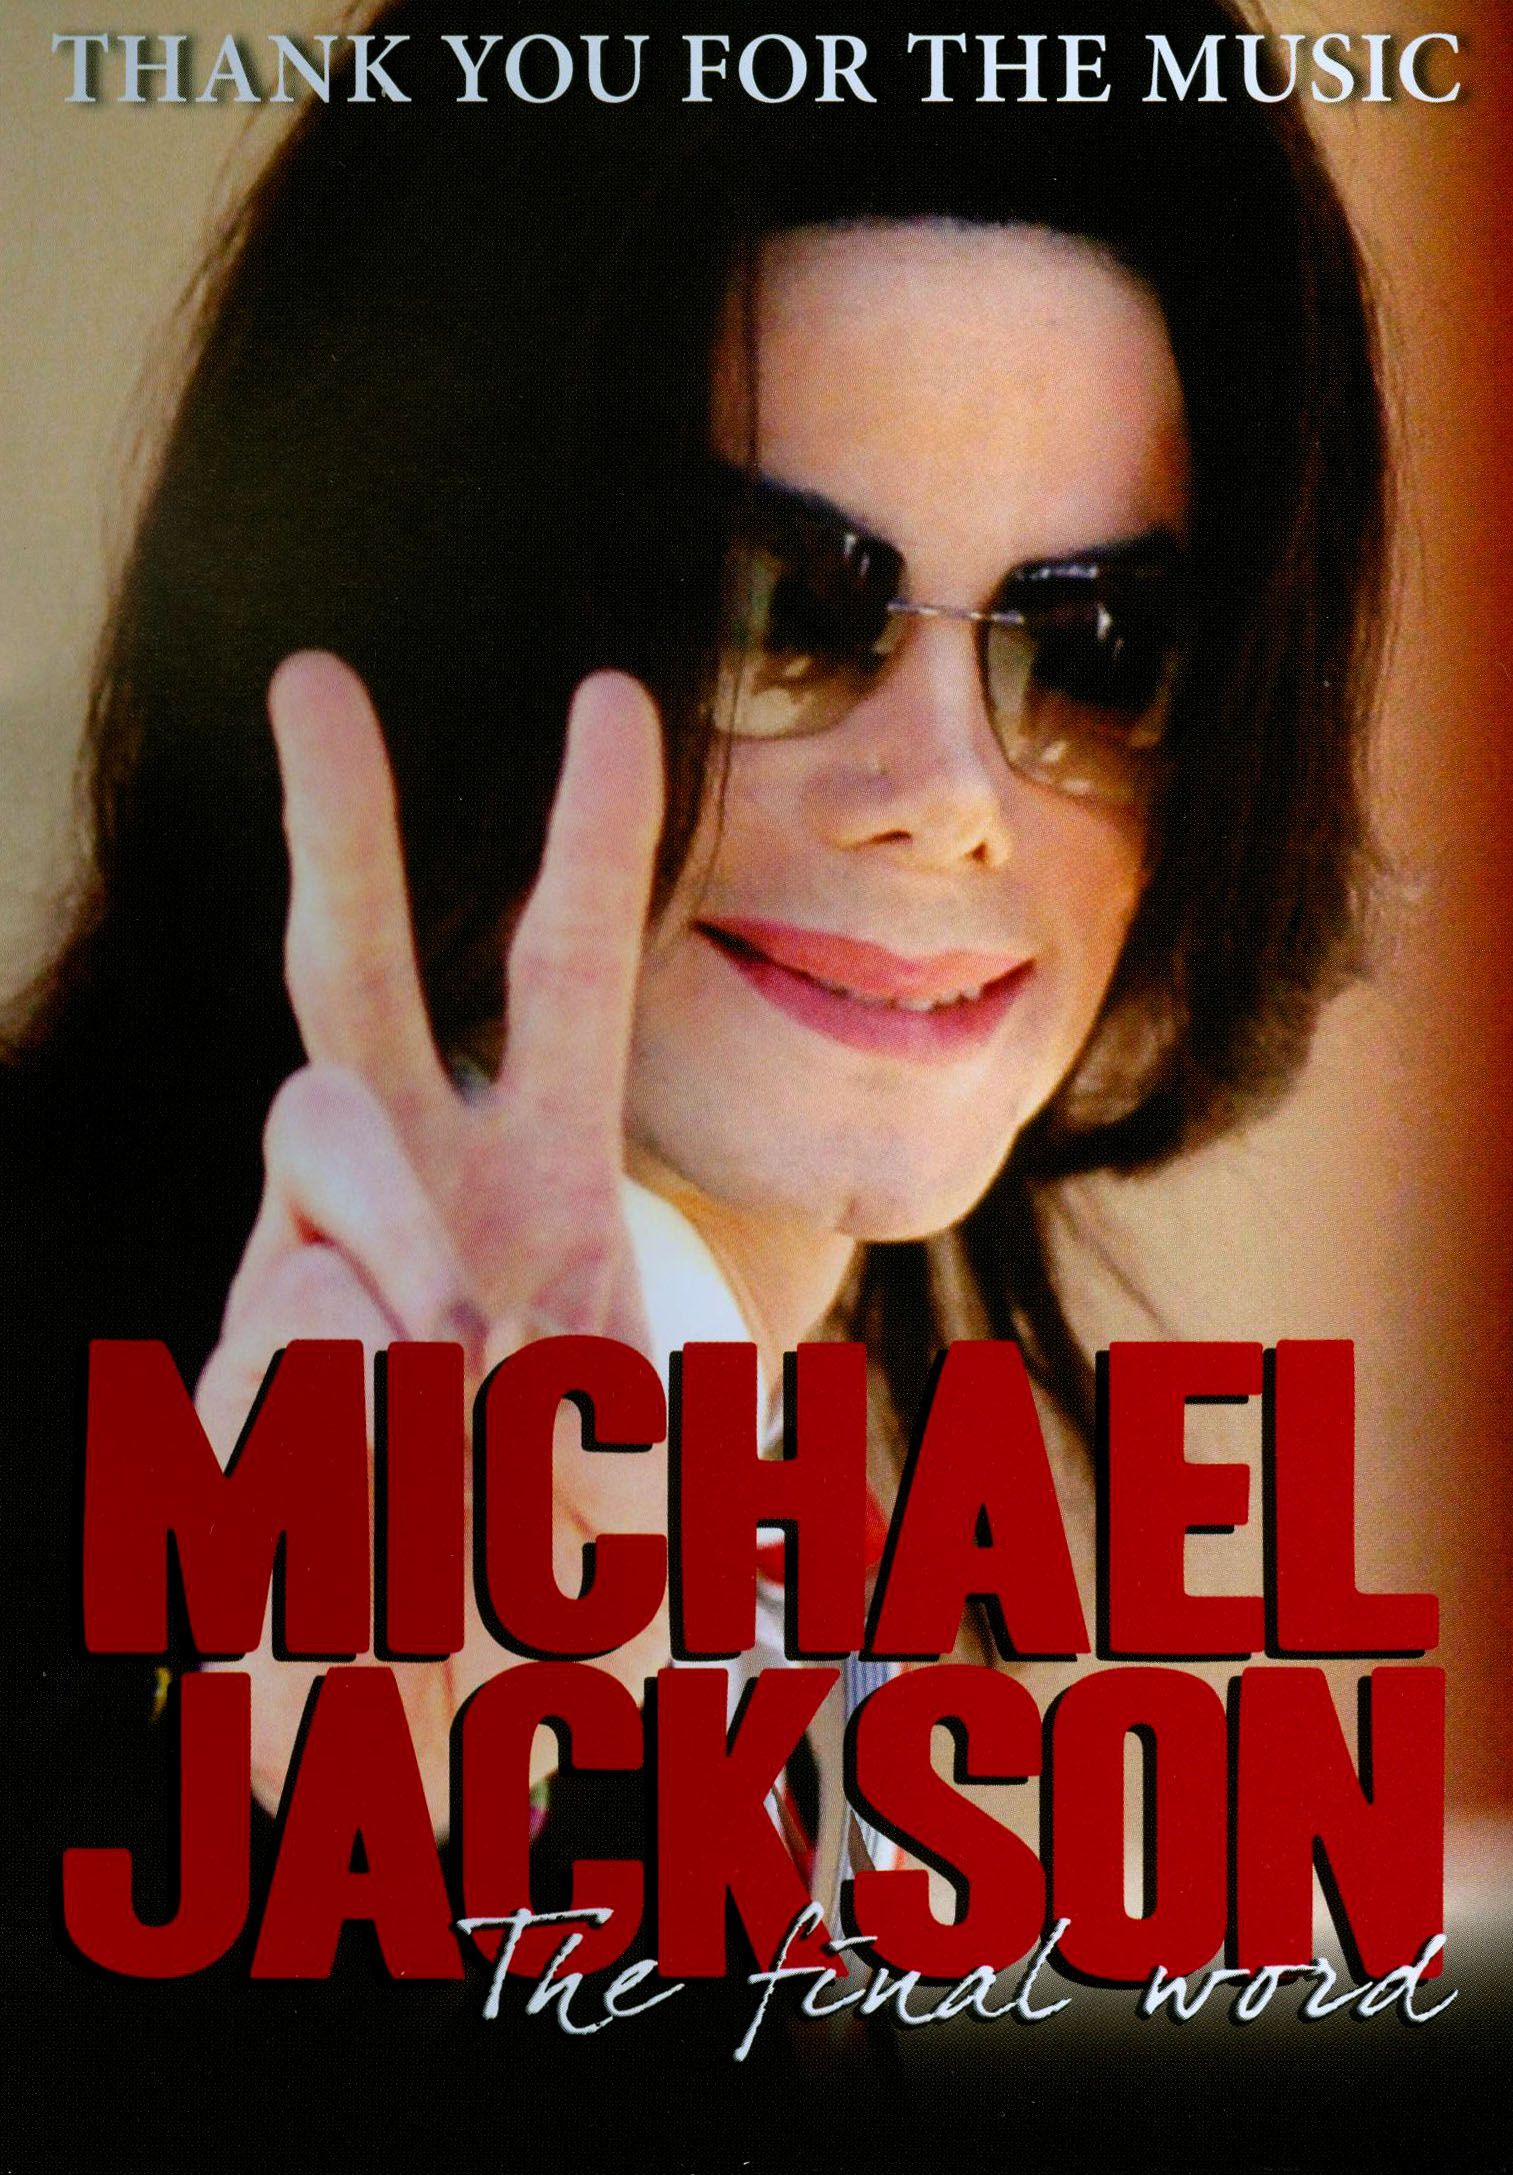 Thank You for the Music: Michael Jackson, The Final Word